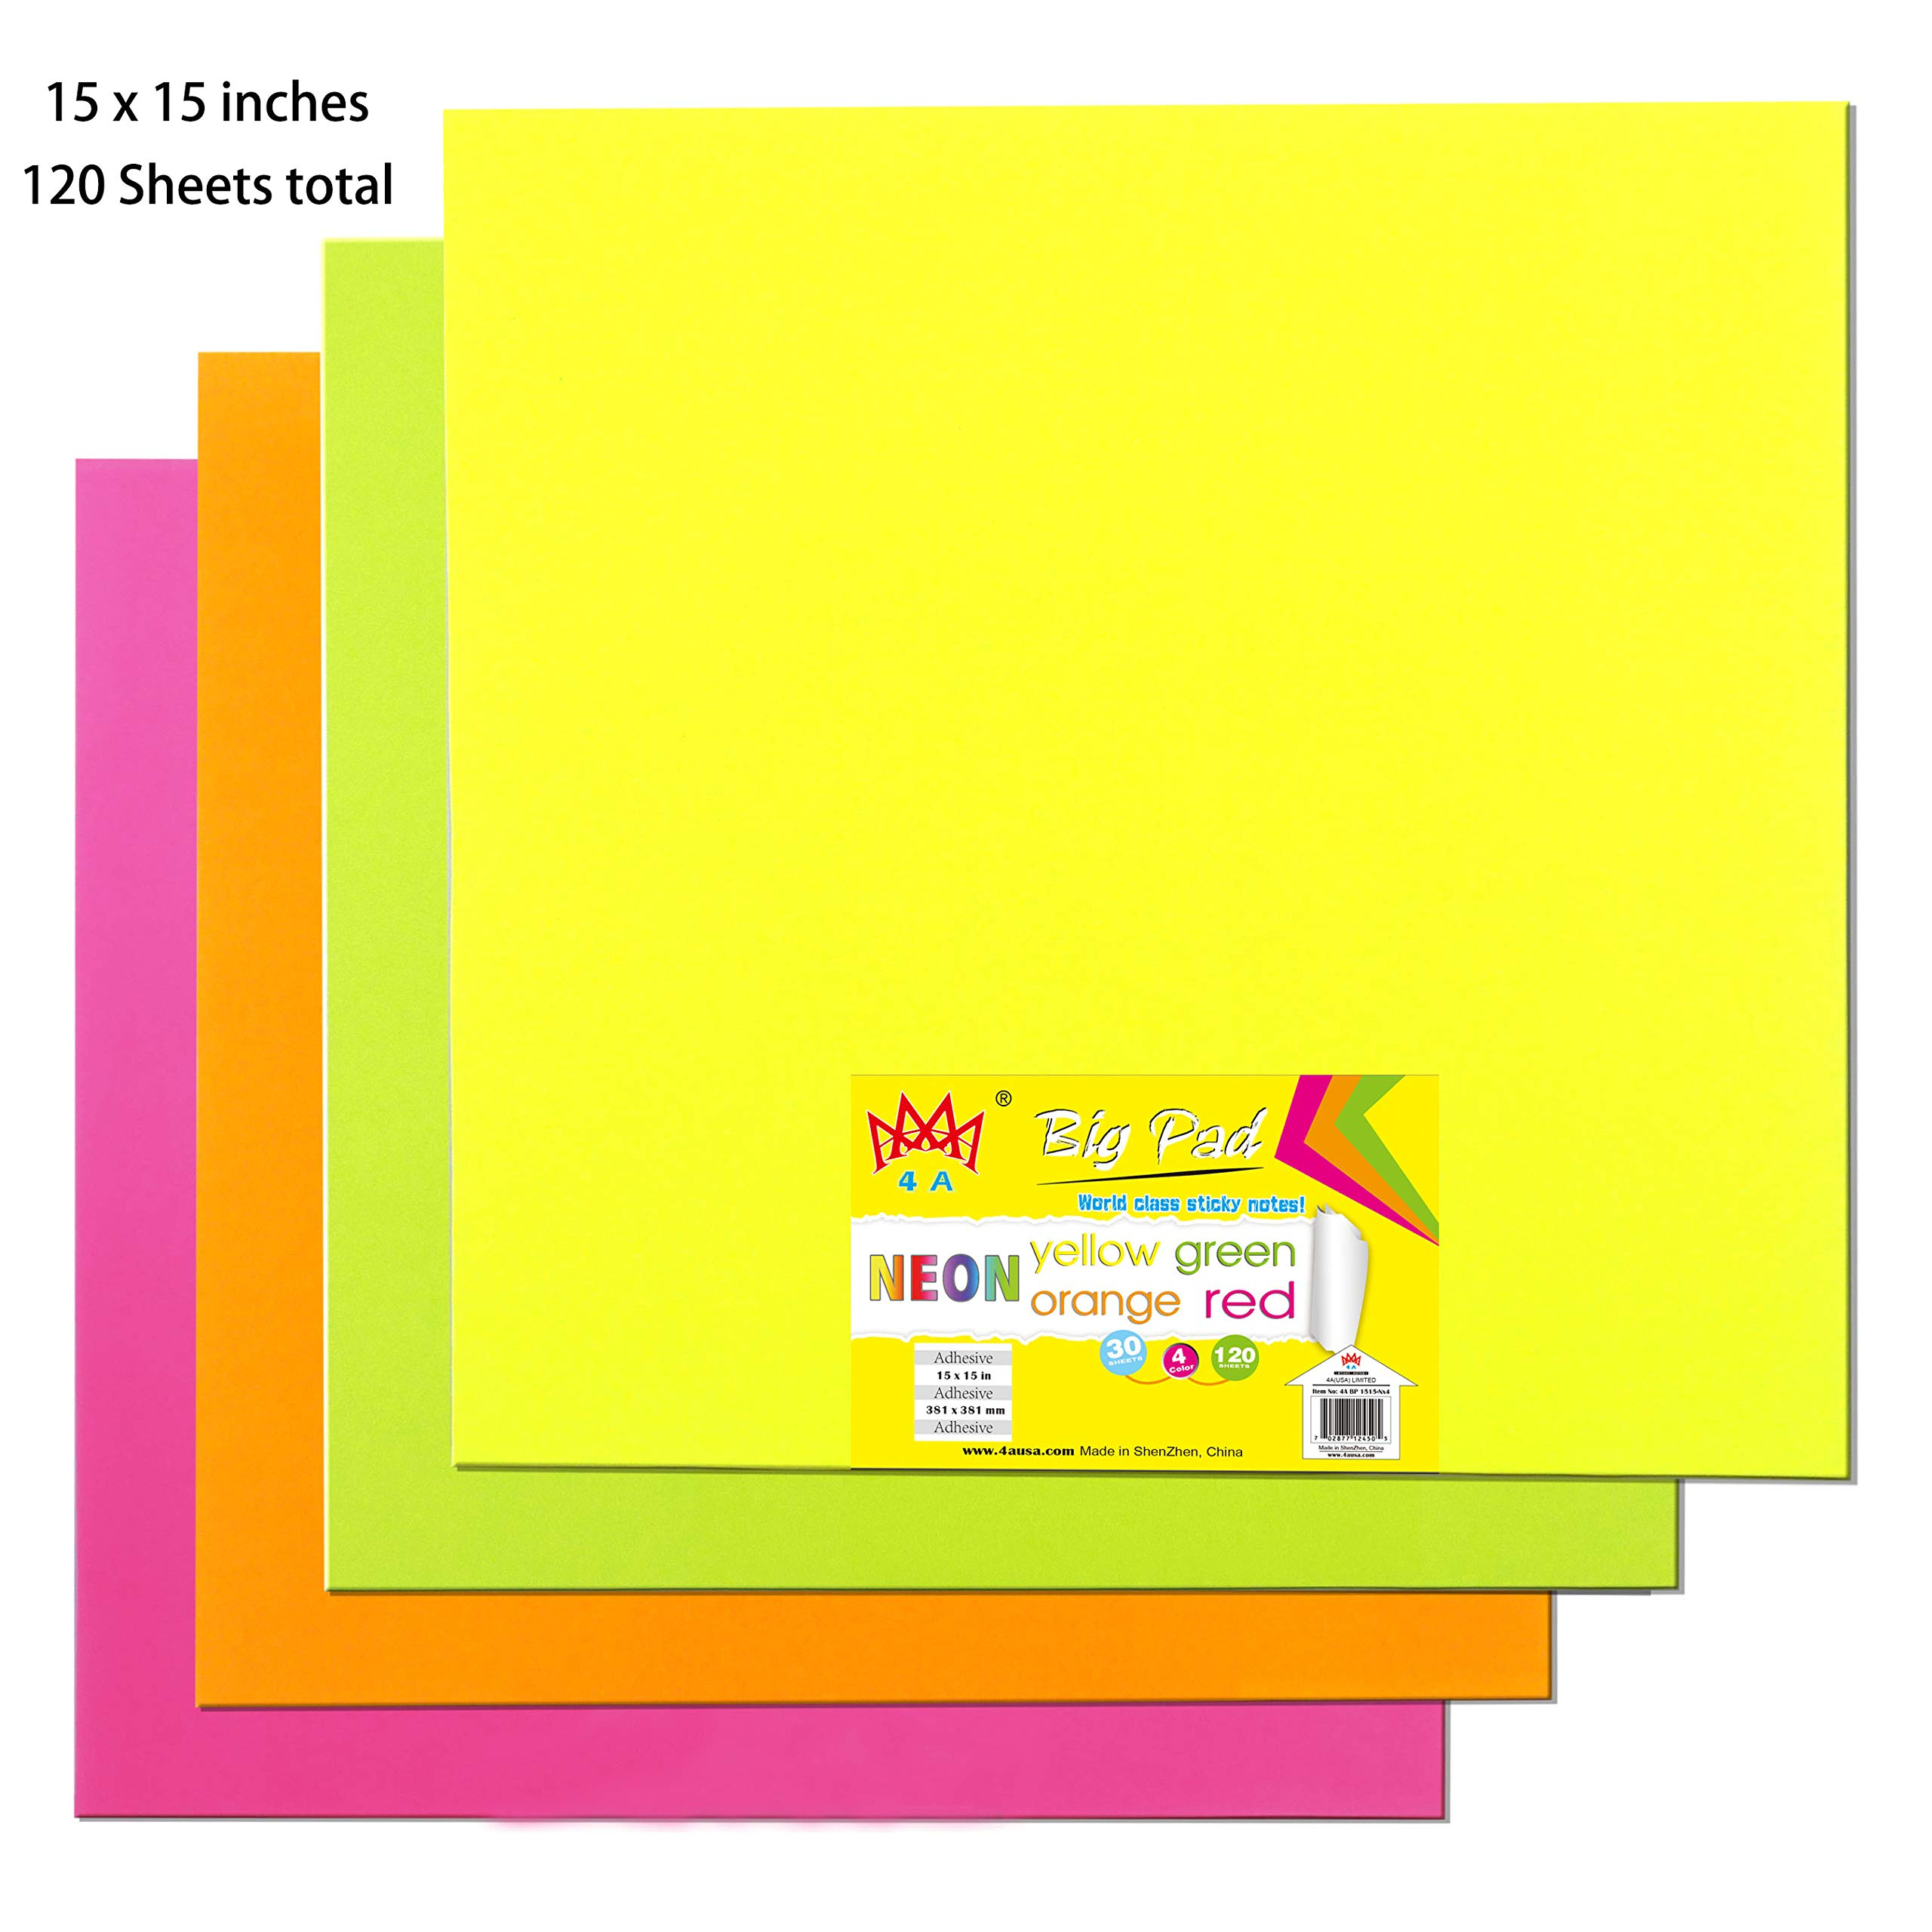 4A Sticky Big Pad,15 x 15 in,Large Size,Neon Yellow,Orange,Red and Green,Self-Stick Notes,30 Sheets/Pad,4 Pads/Pack,4A BP 1515-Nx4